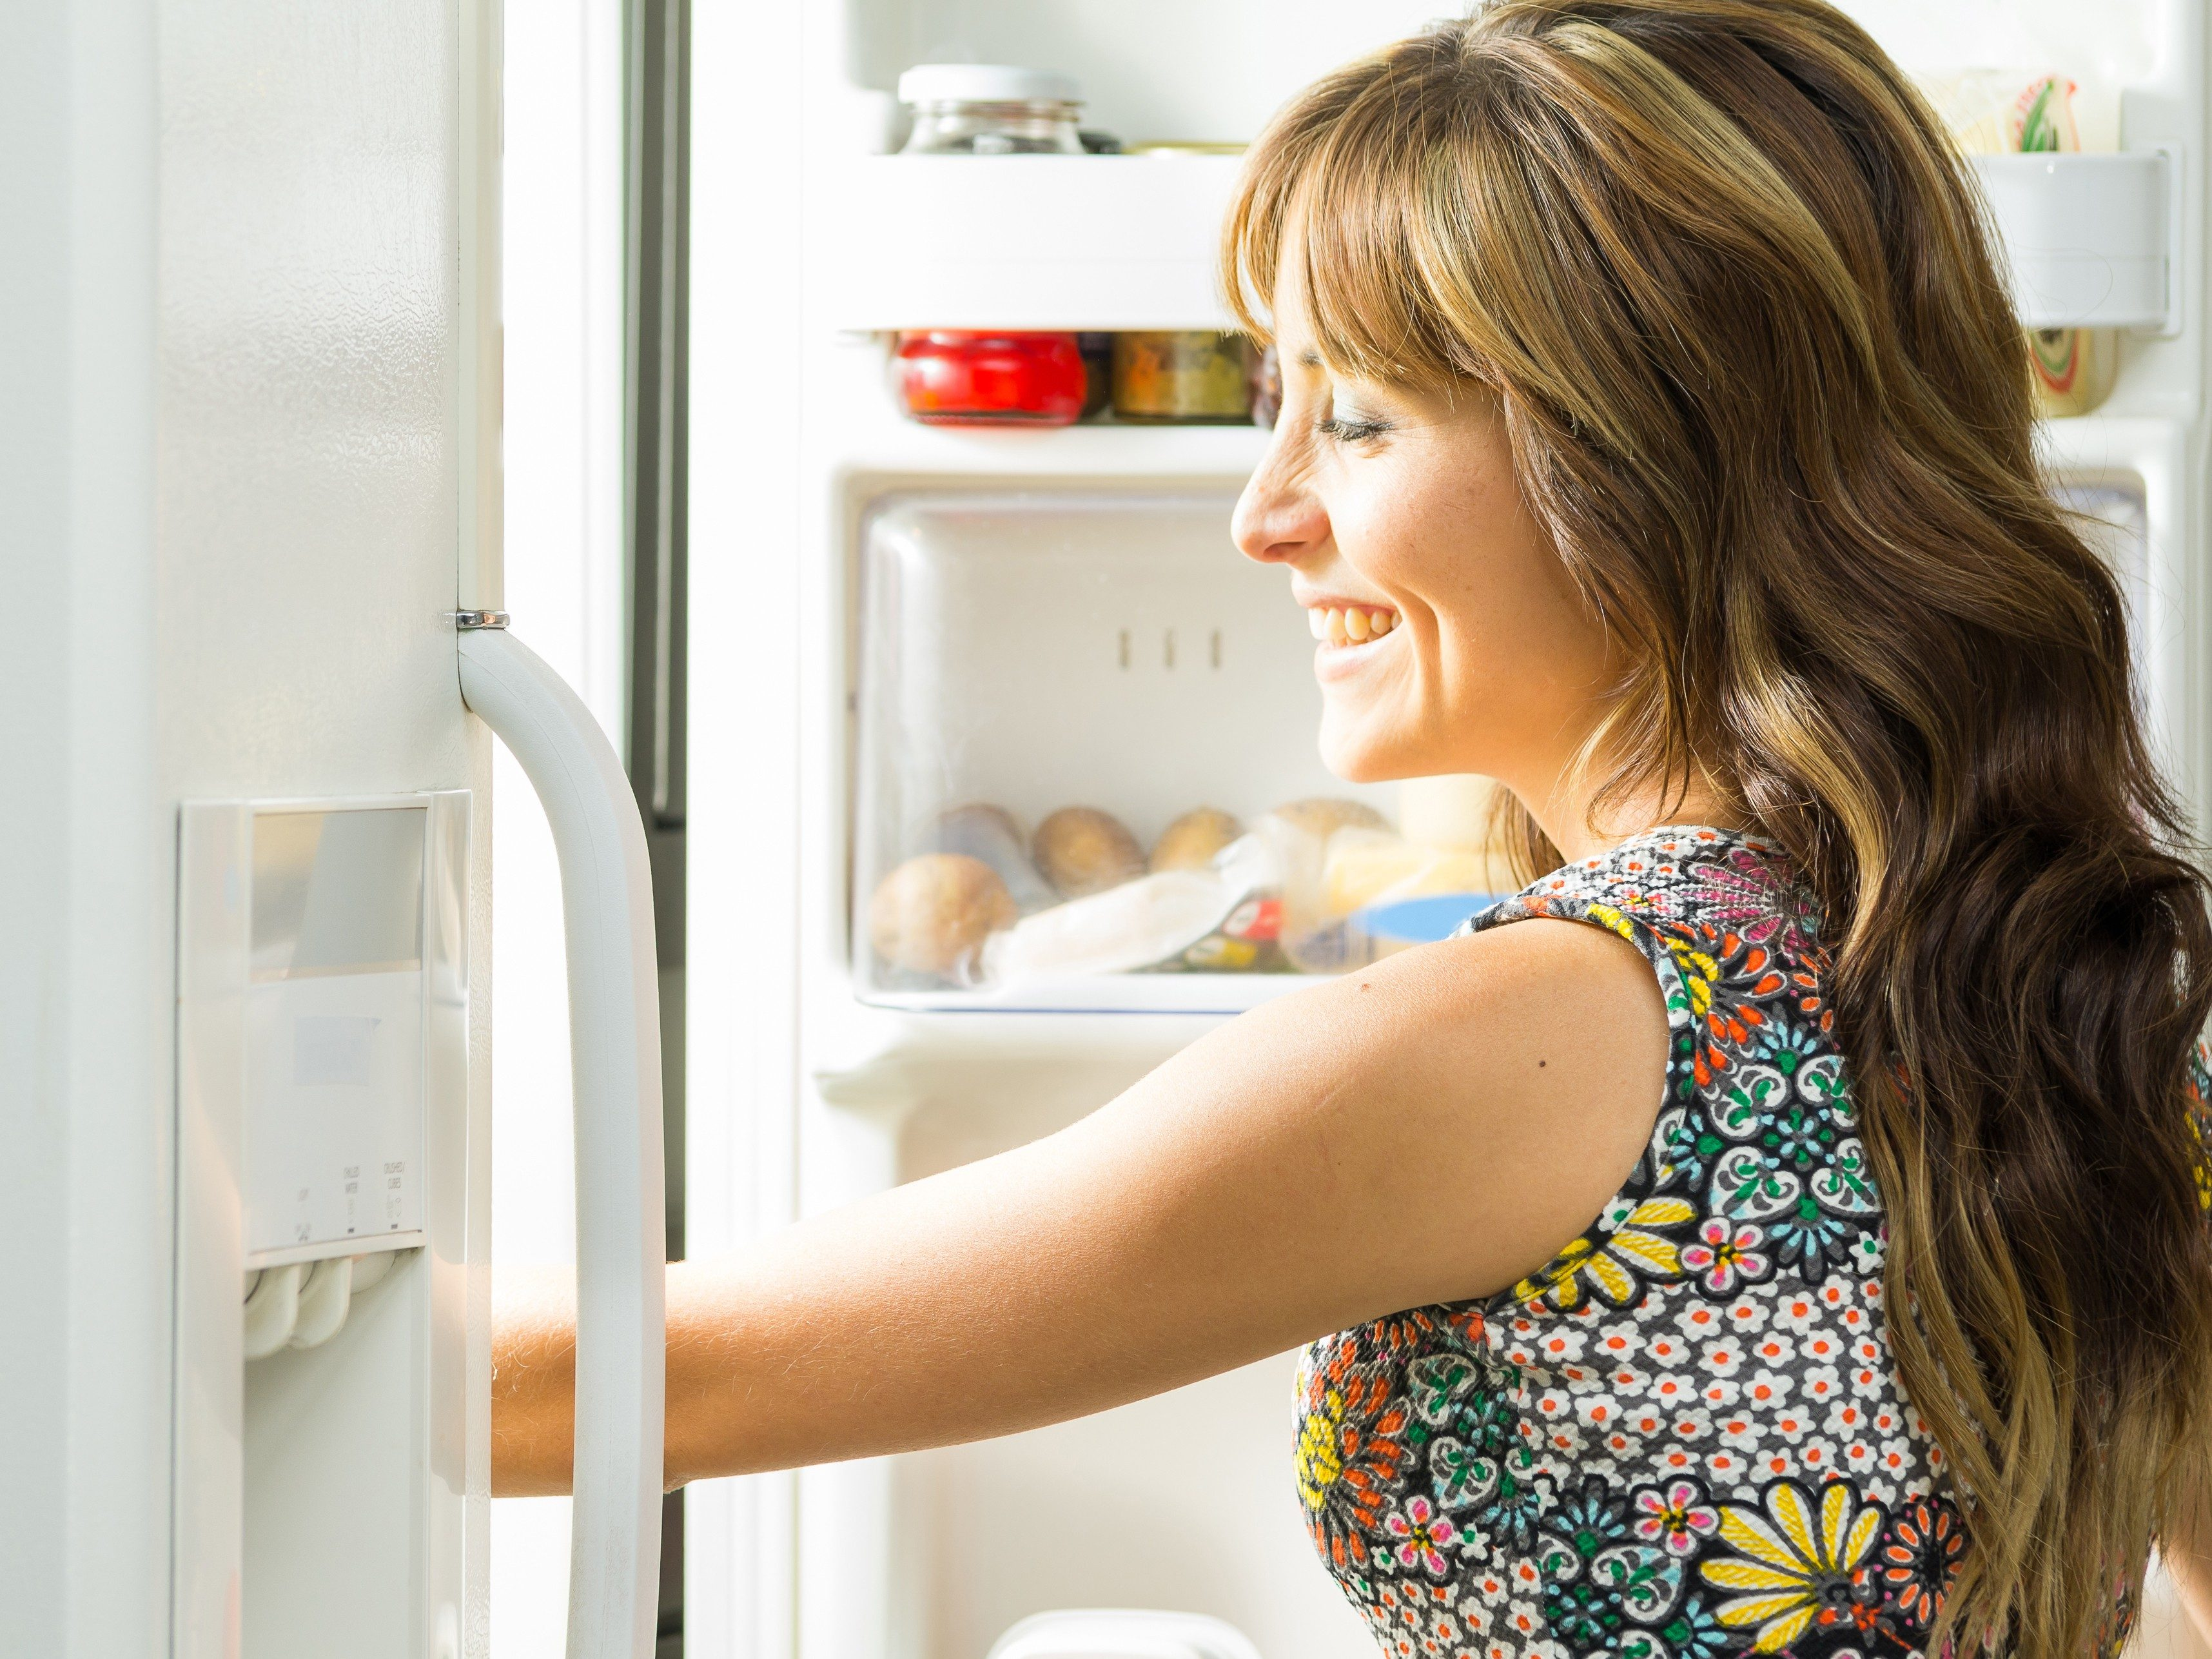 4. It pays to keep your fridge organized.